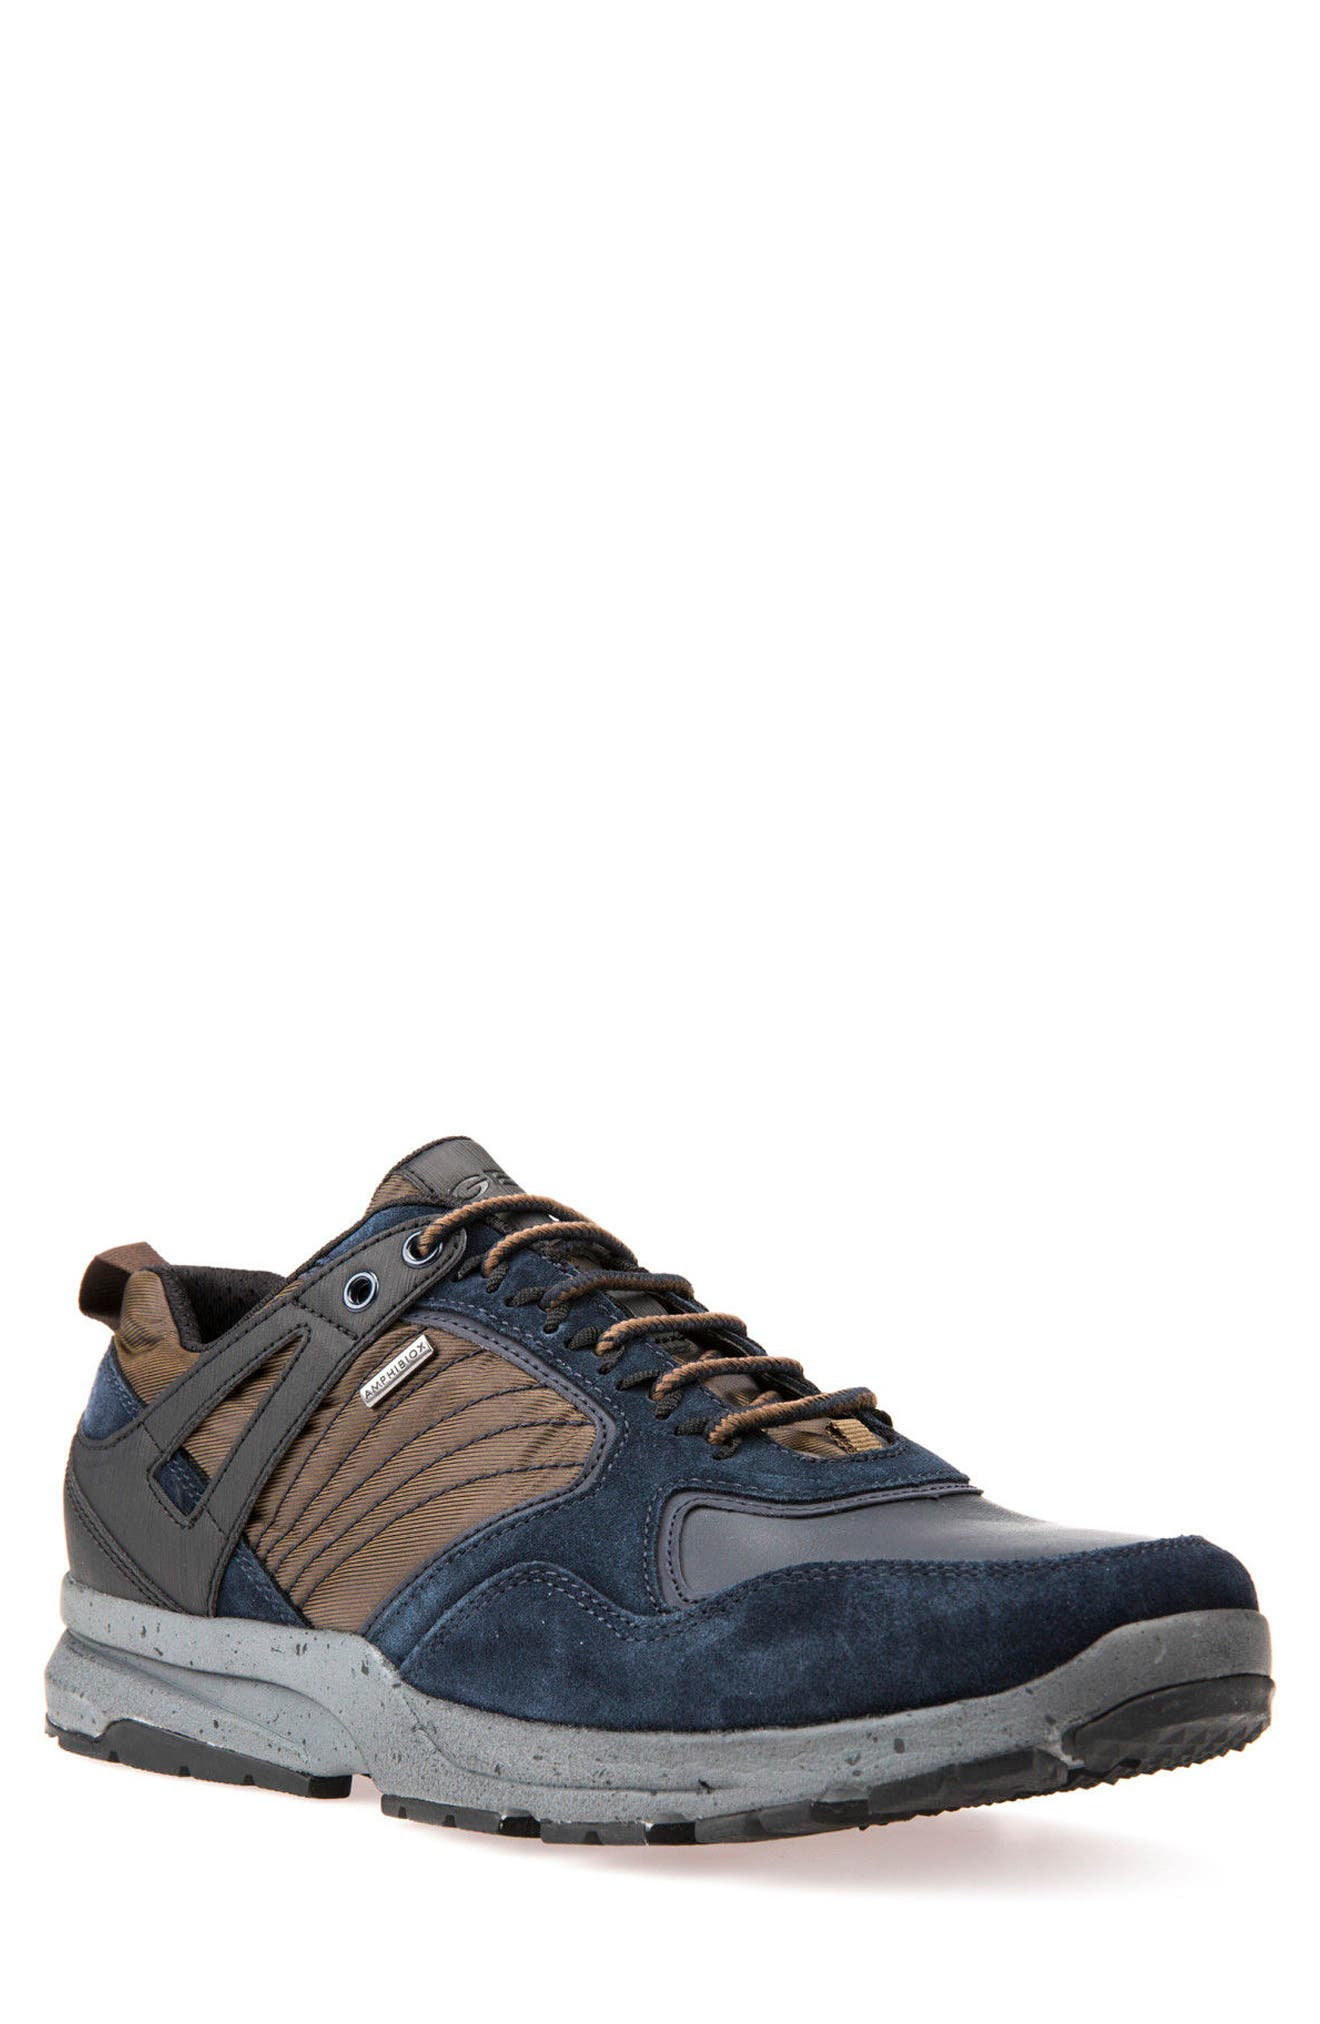 Gegy ABX Waterproof Sneaker,                             Main thumbnail 1, color,                             Navy/ Musk